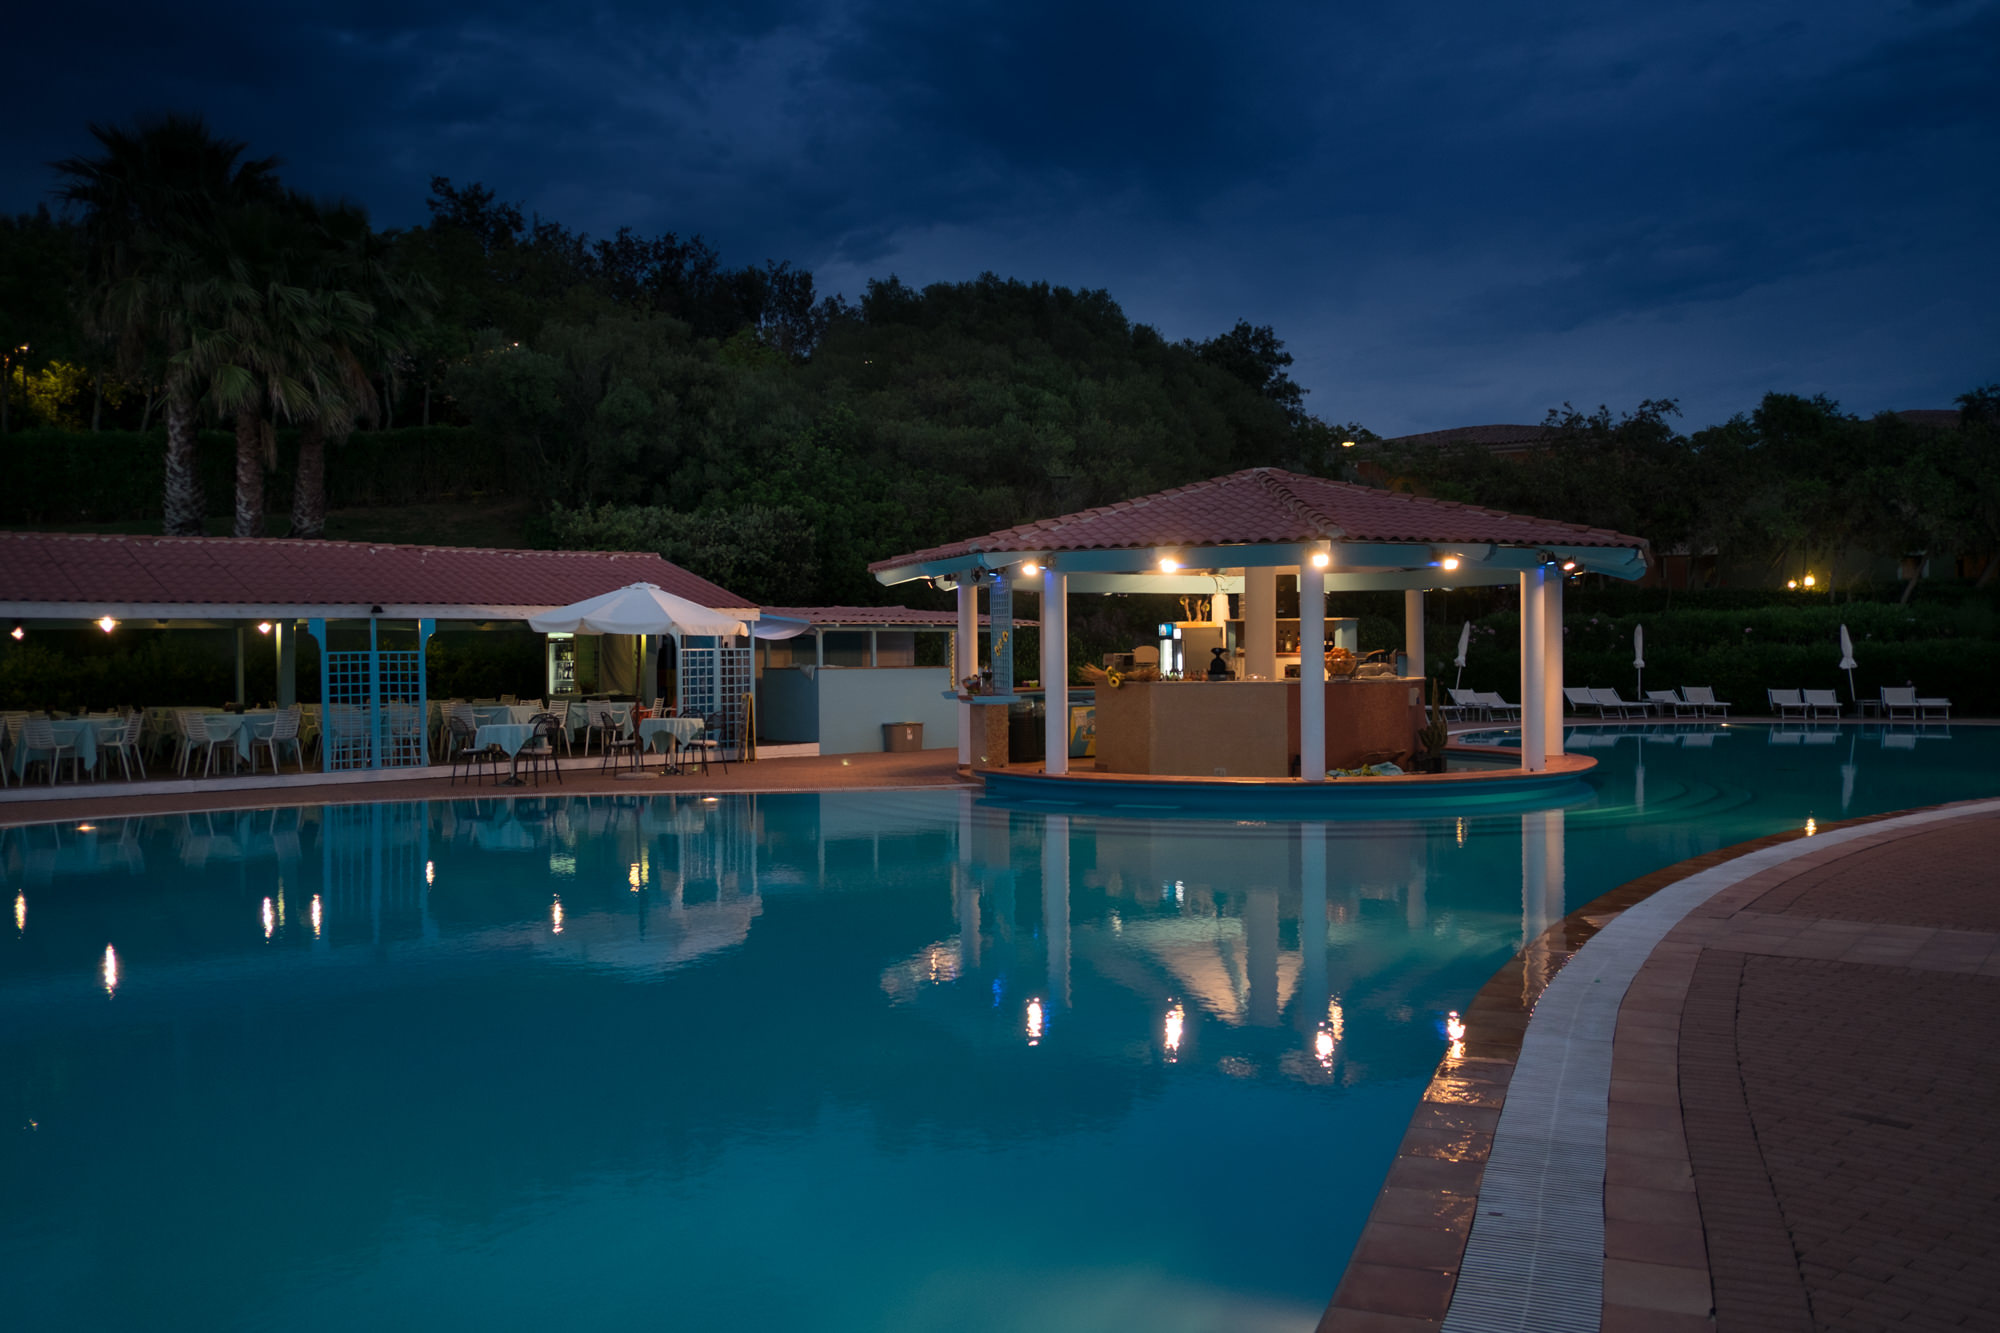 Geovillage resort sardegna pool leisure